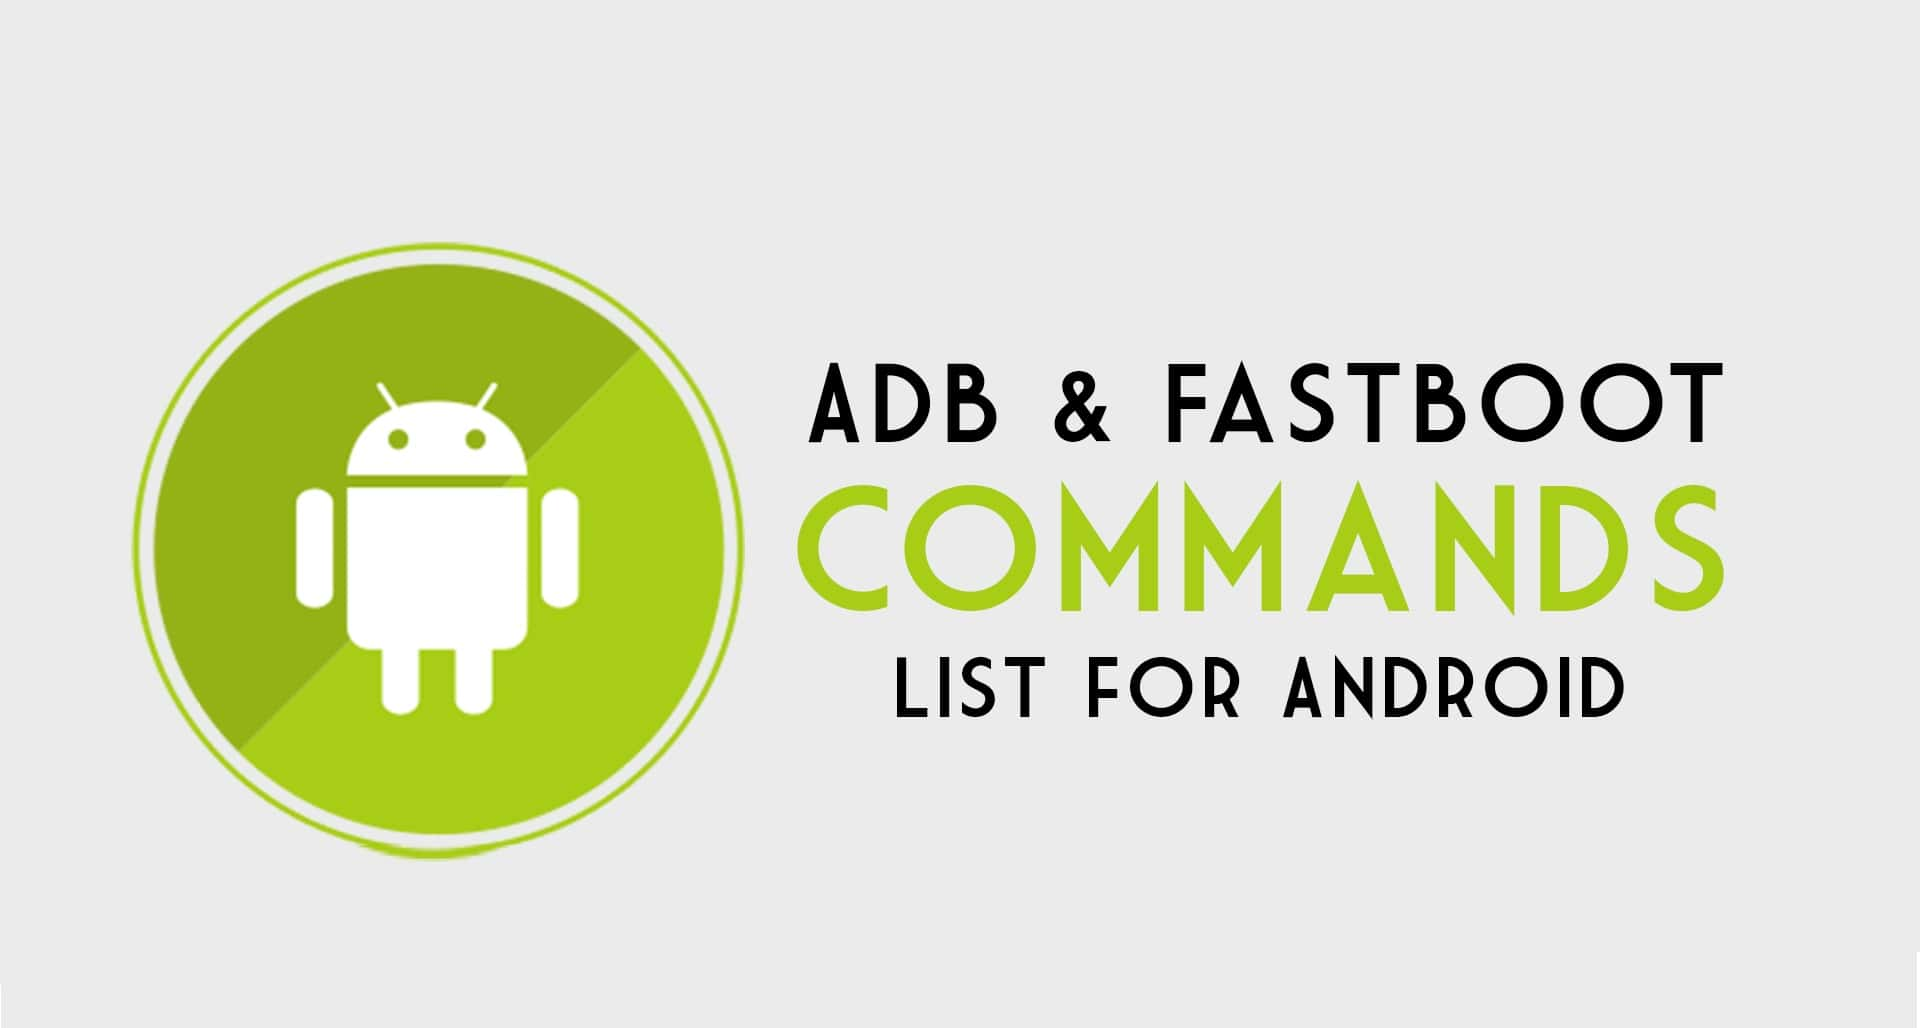 Ultimate List of ADB & Fastboot Commands